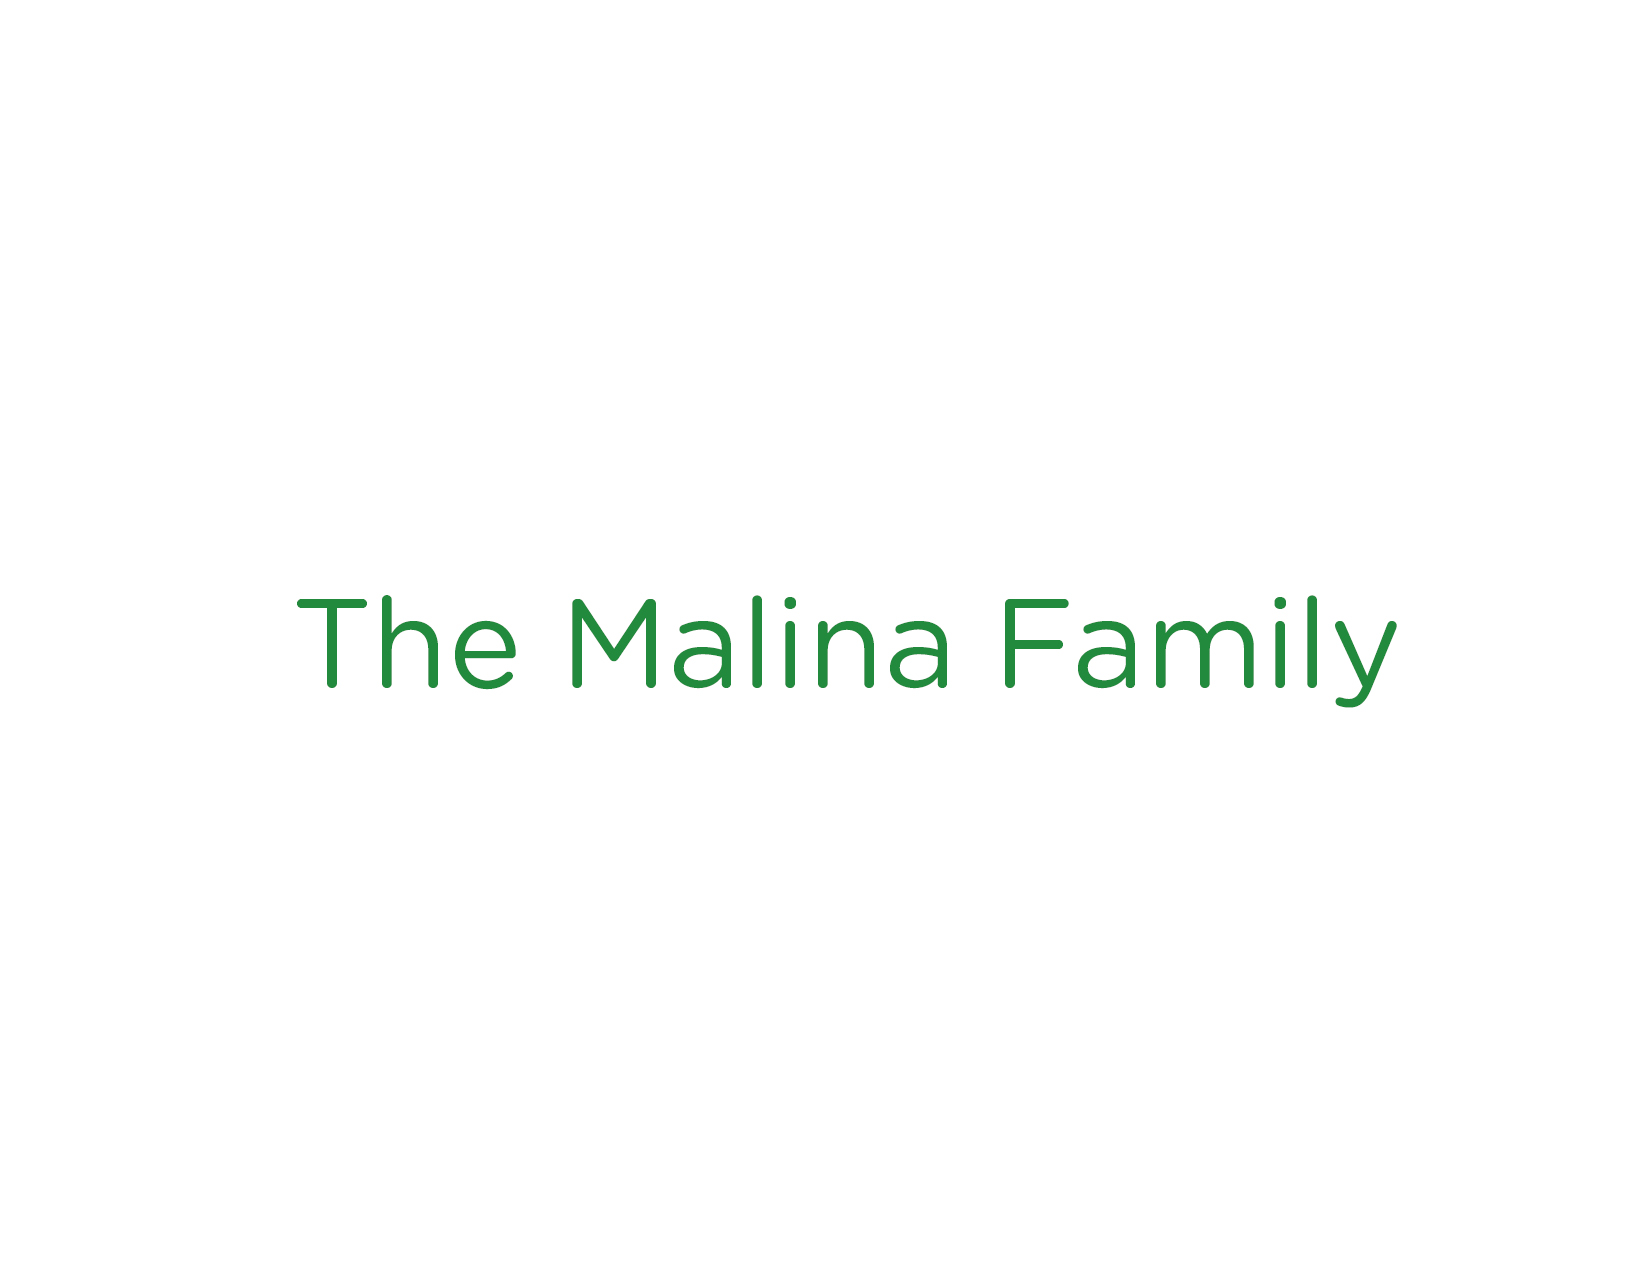 The Malina Family